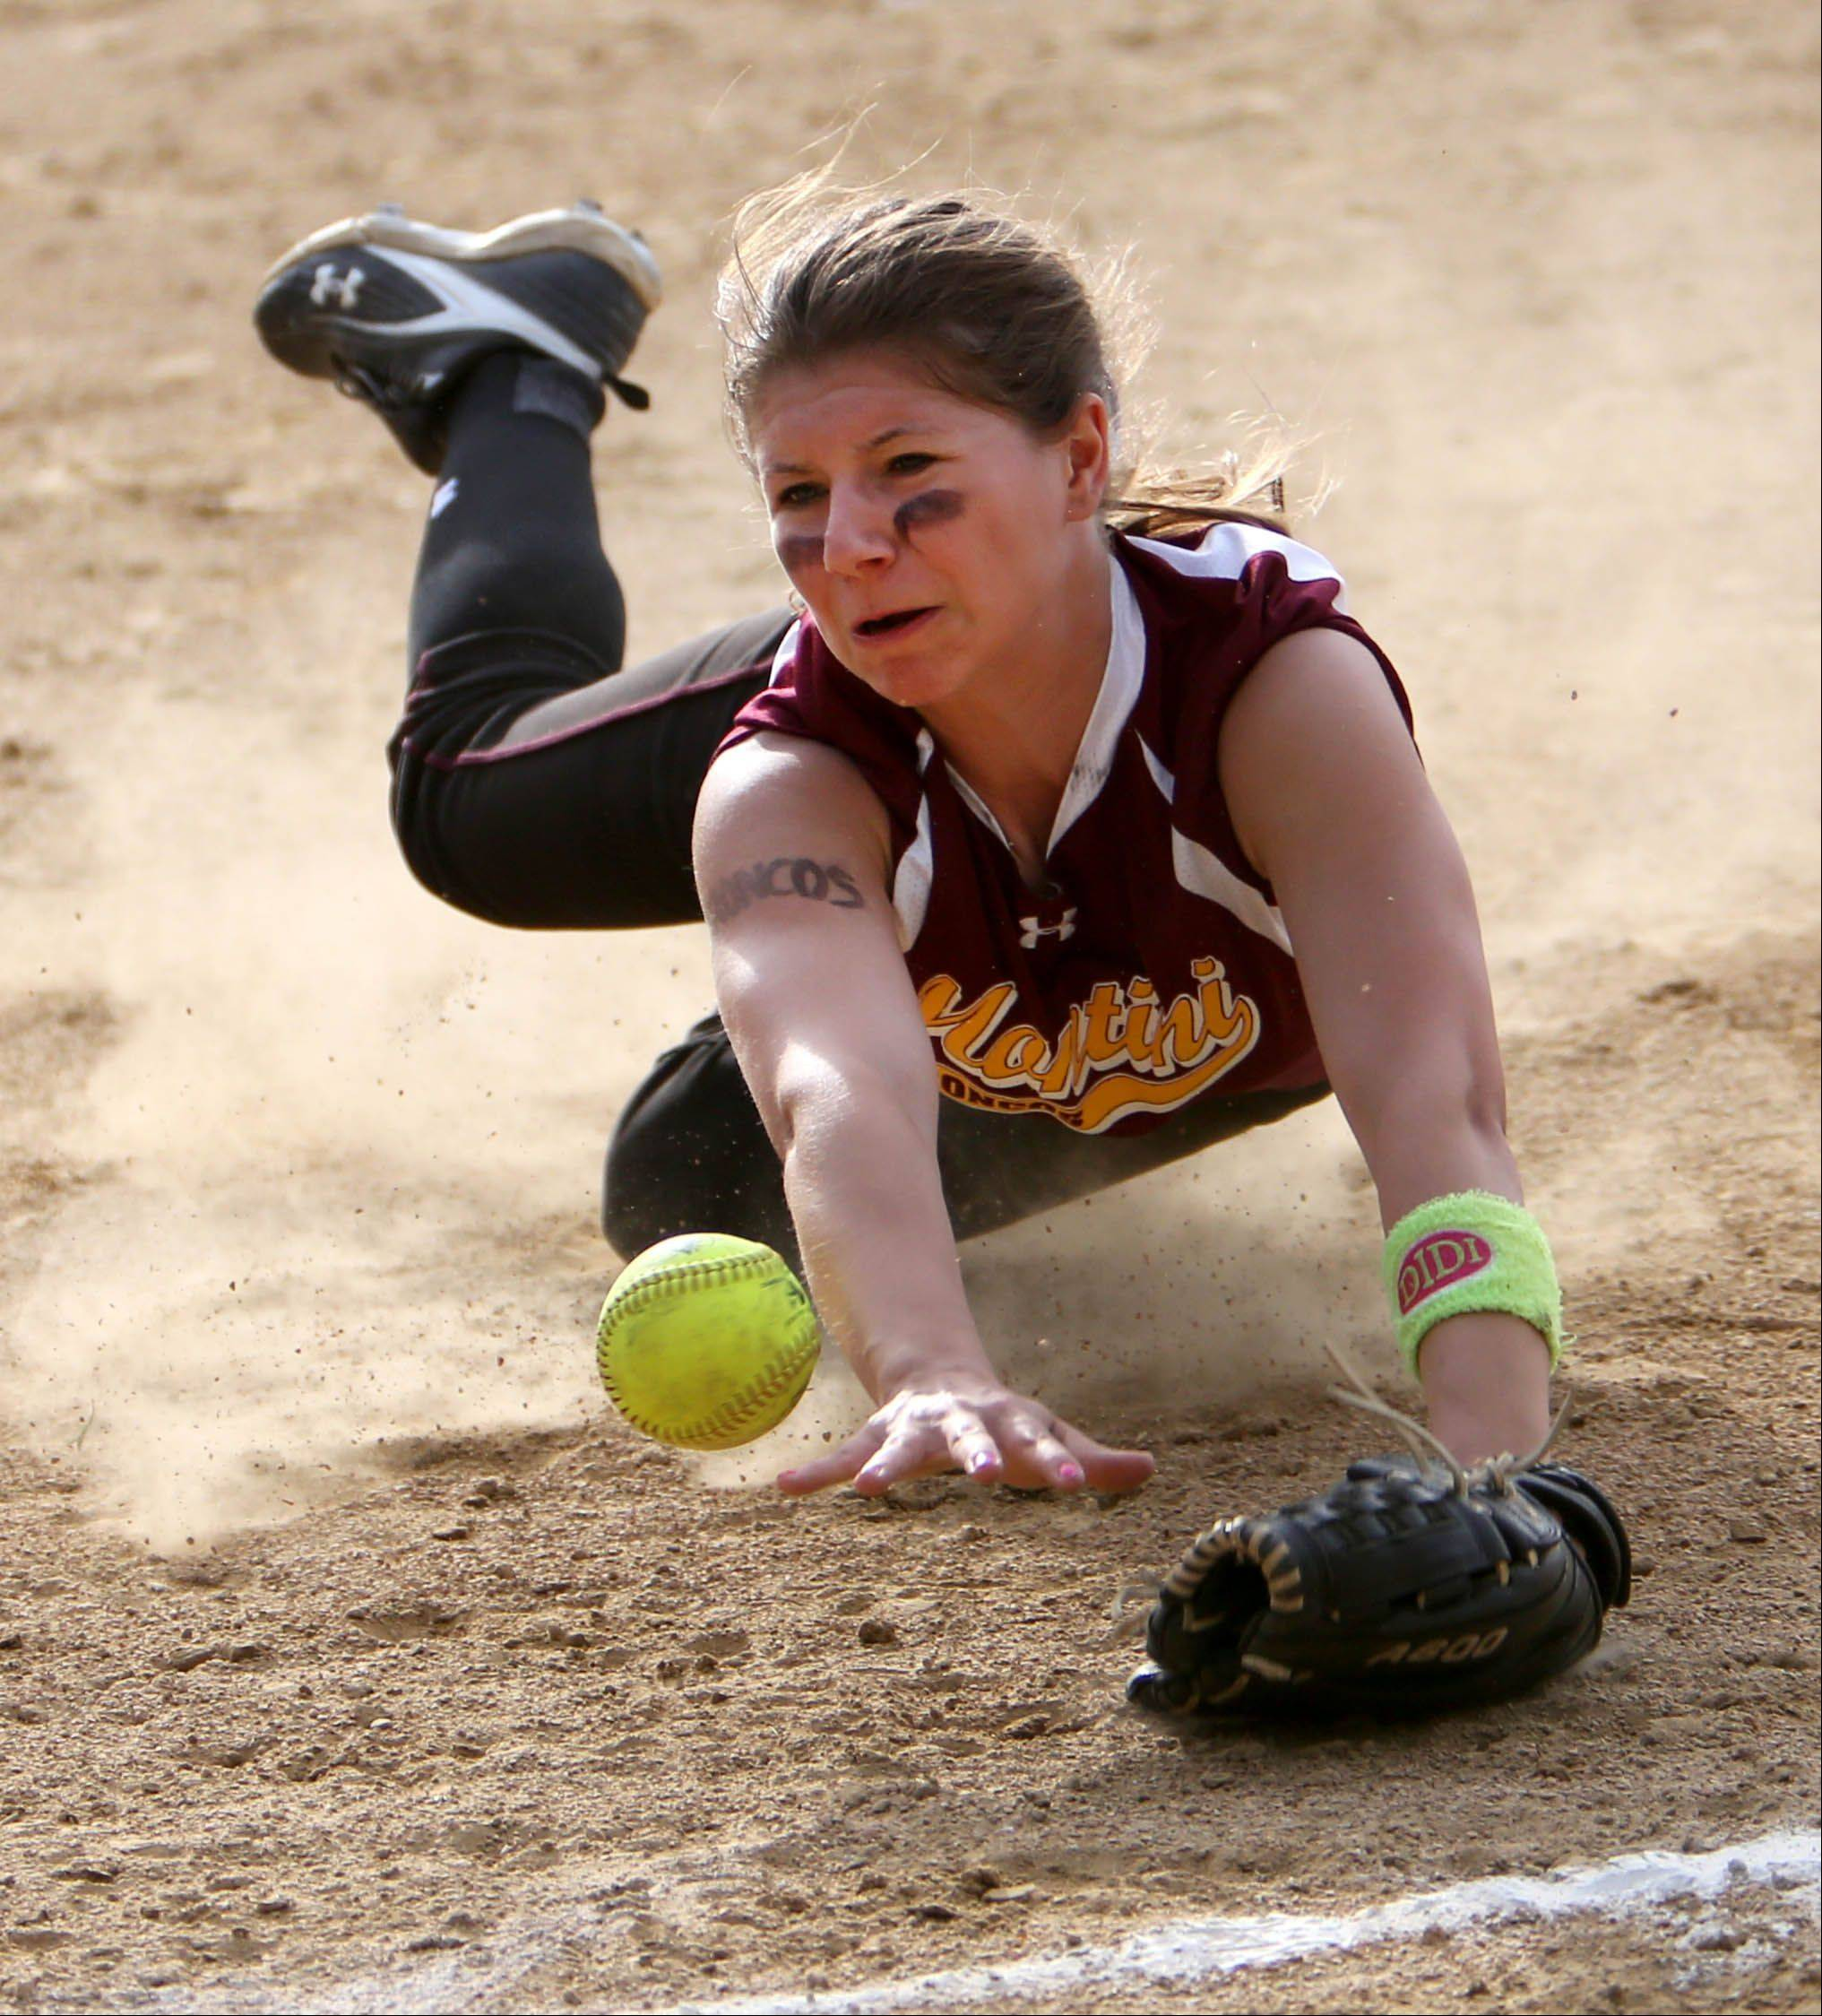 Montini's Lauren Trojnar dives for a ball in the infield during Monday's softball game against St. Francis in Wheaton.